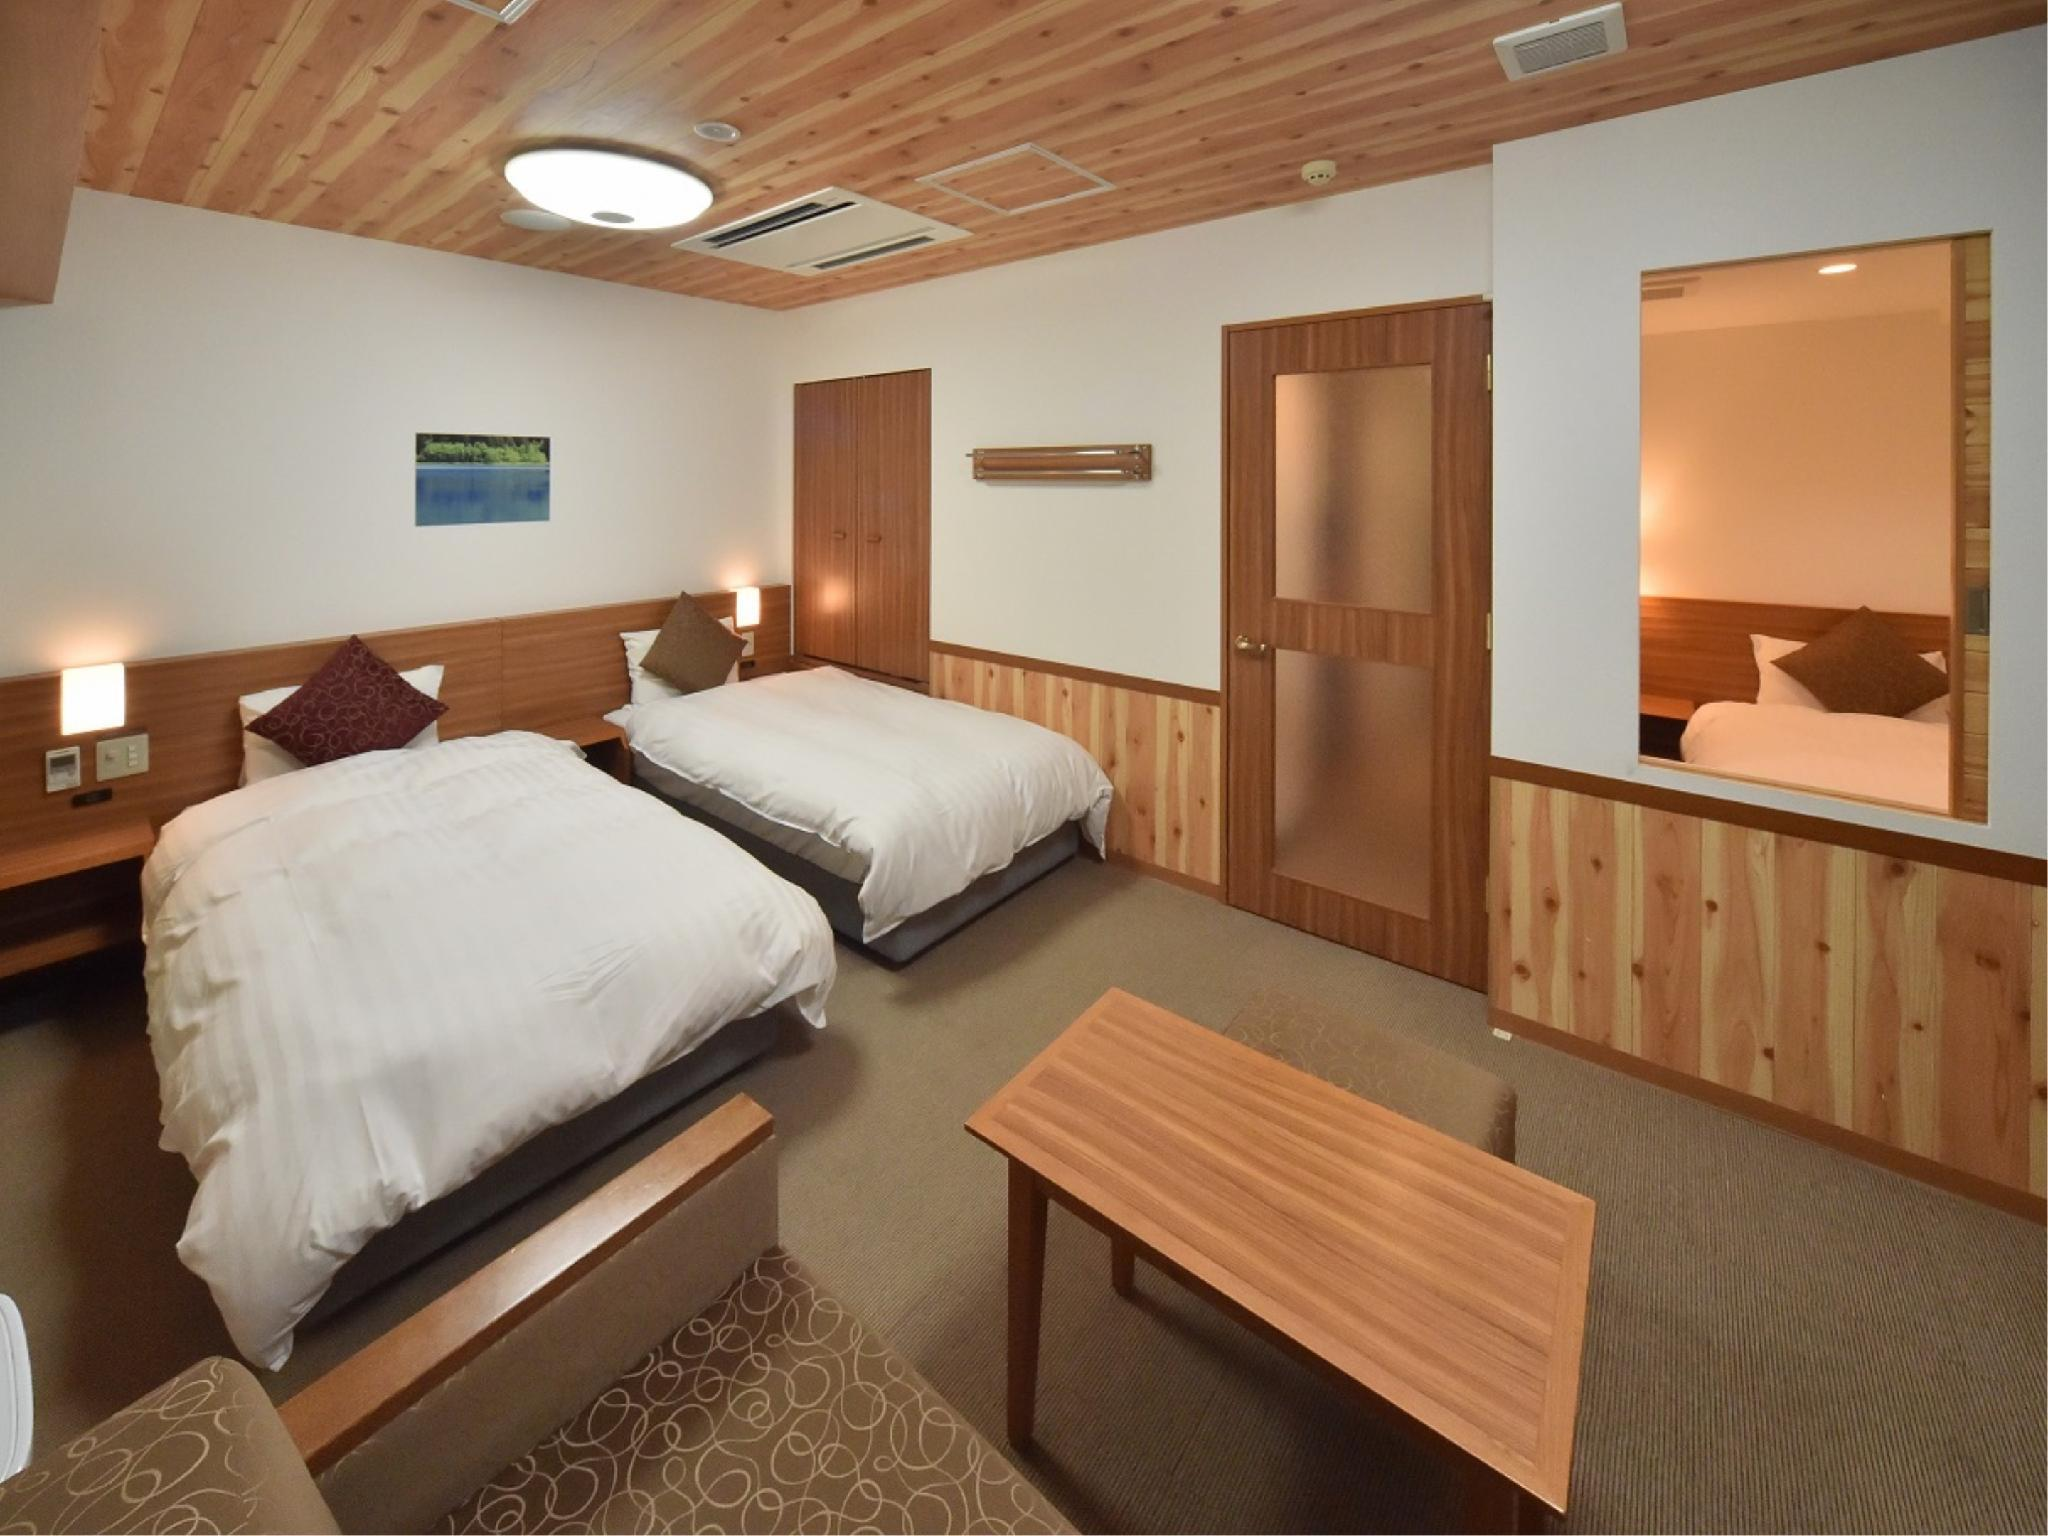 디럭스 트윈룸(샤워부스만) (Deluxe Twin Room*Has shower, no bath in room)